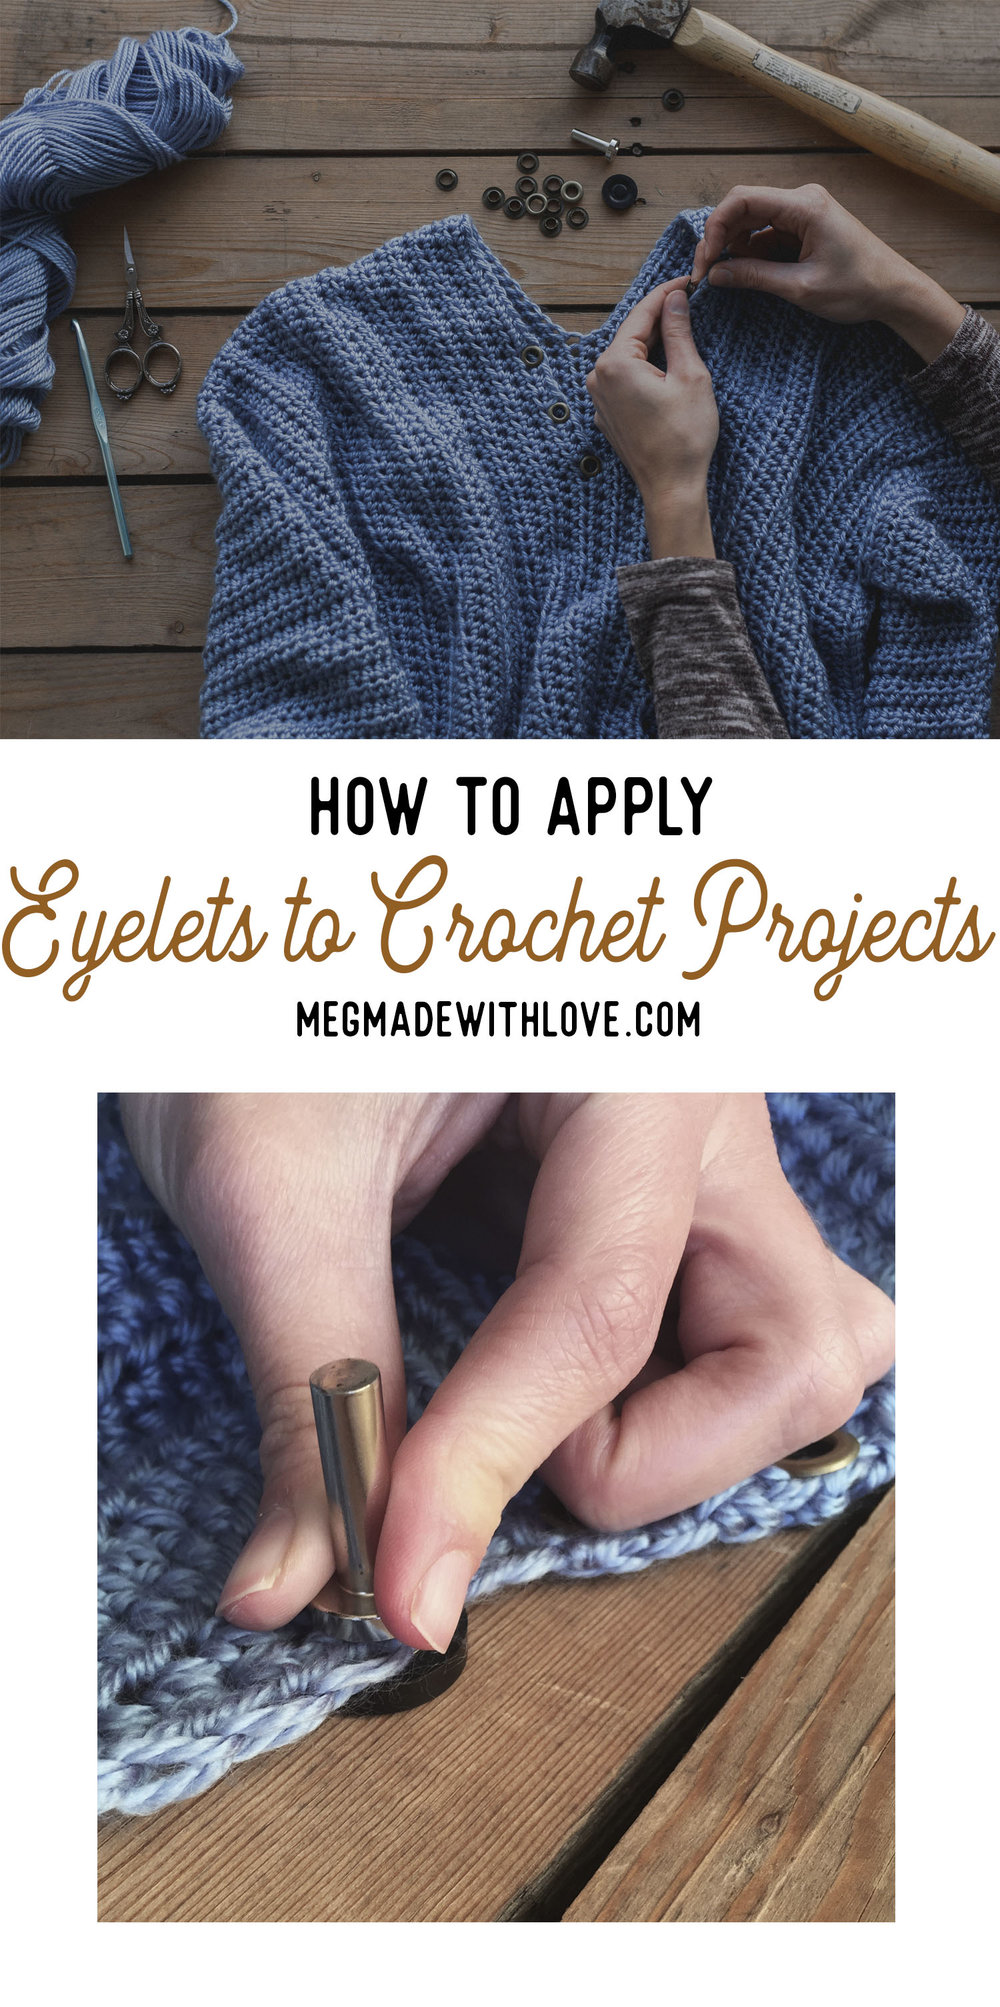 How to Apply Eyelets to Crochet Projects - Megmade with Love